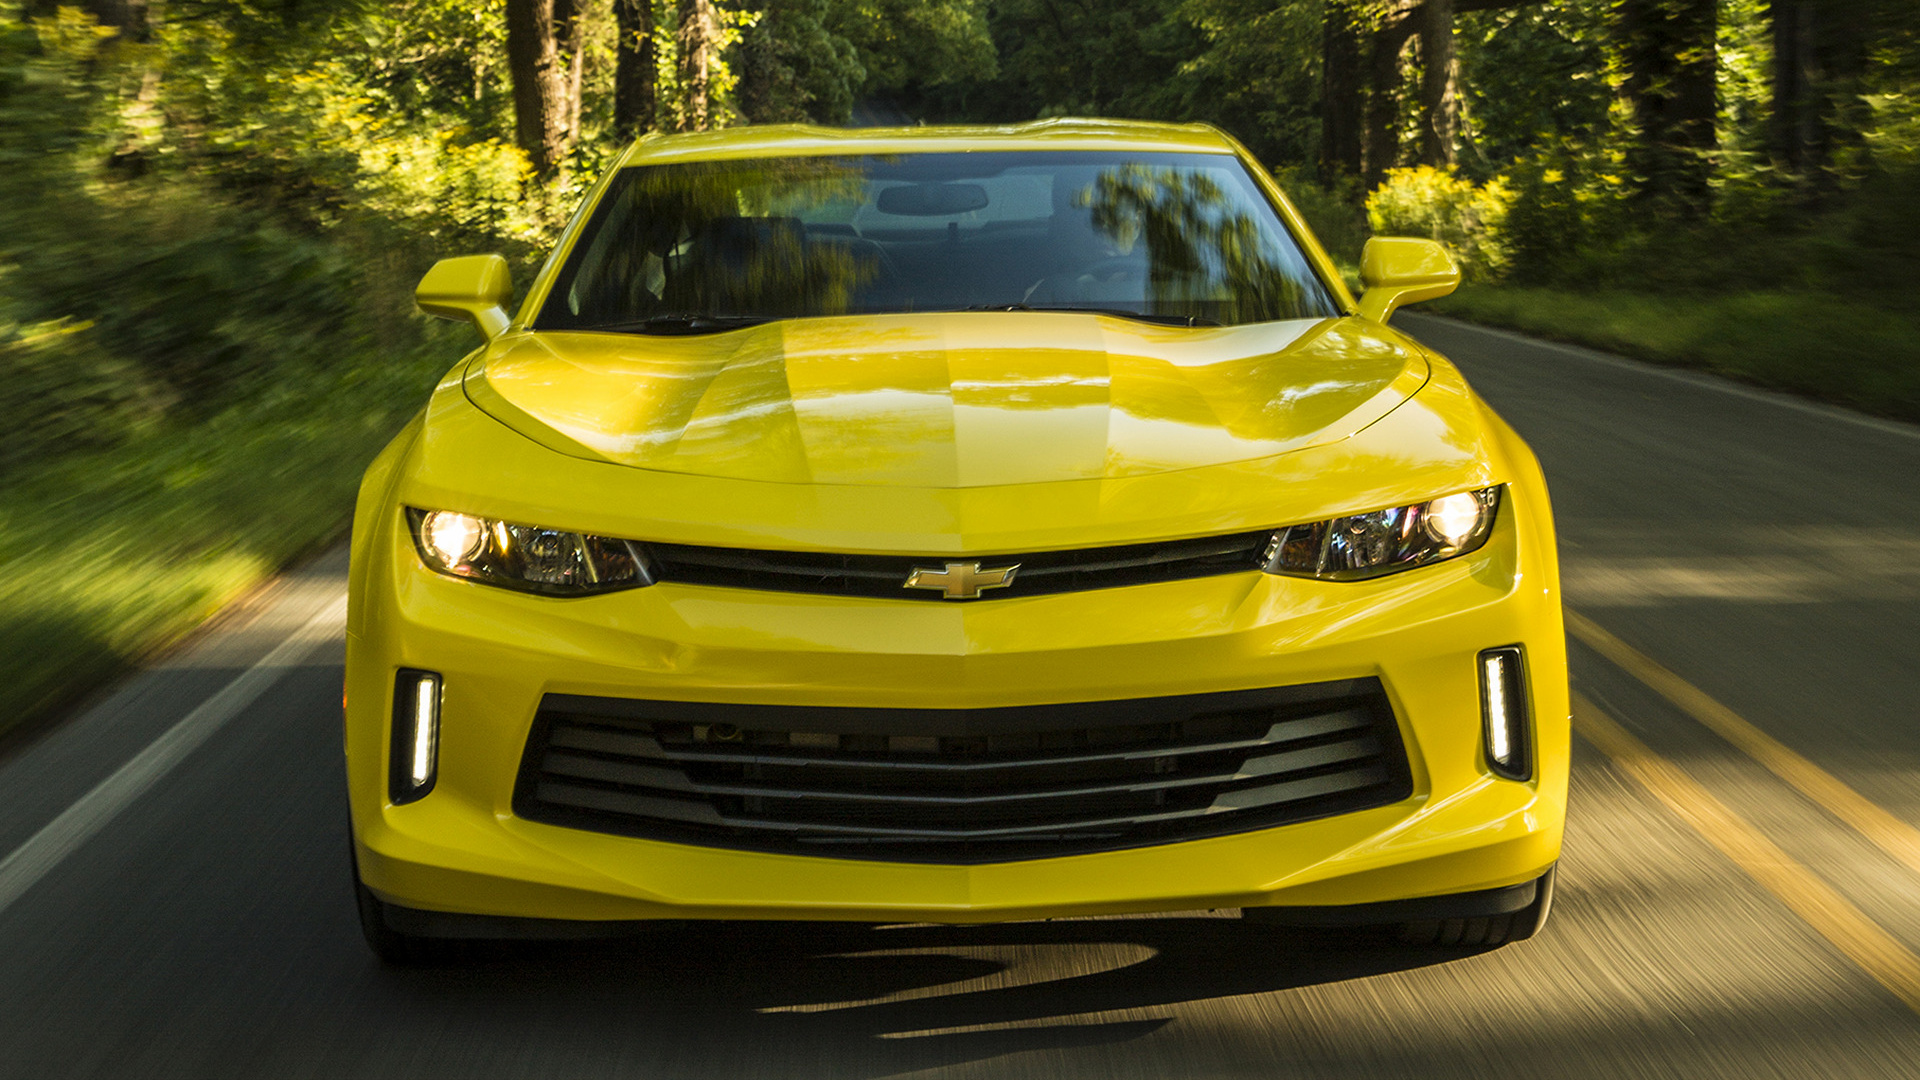 Chevrolet Camaro (2016) Wallpapers And HD Images